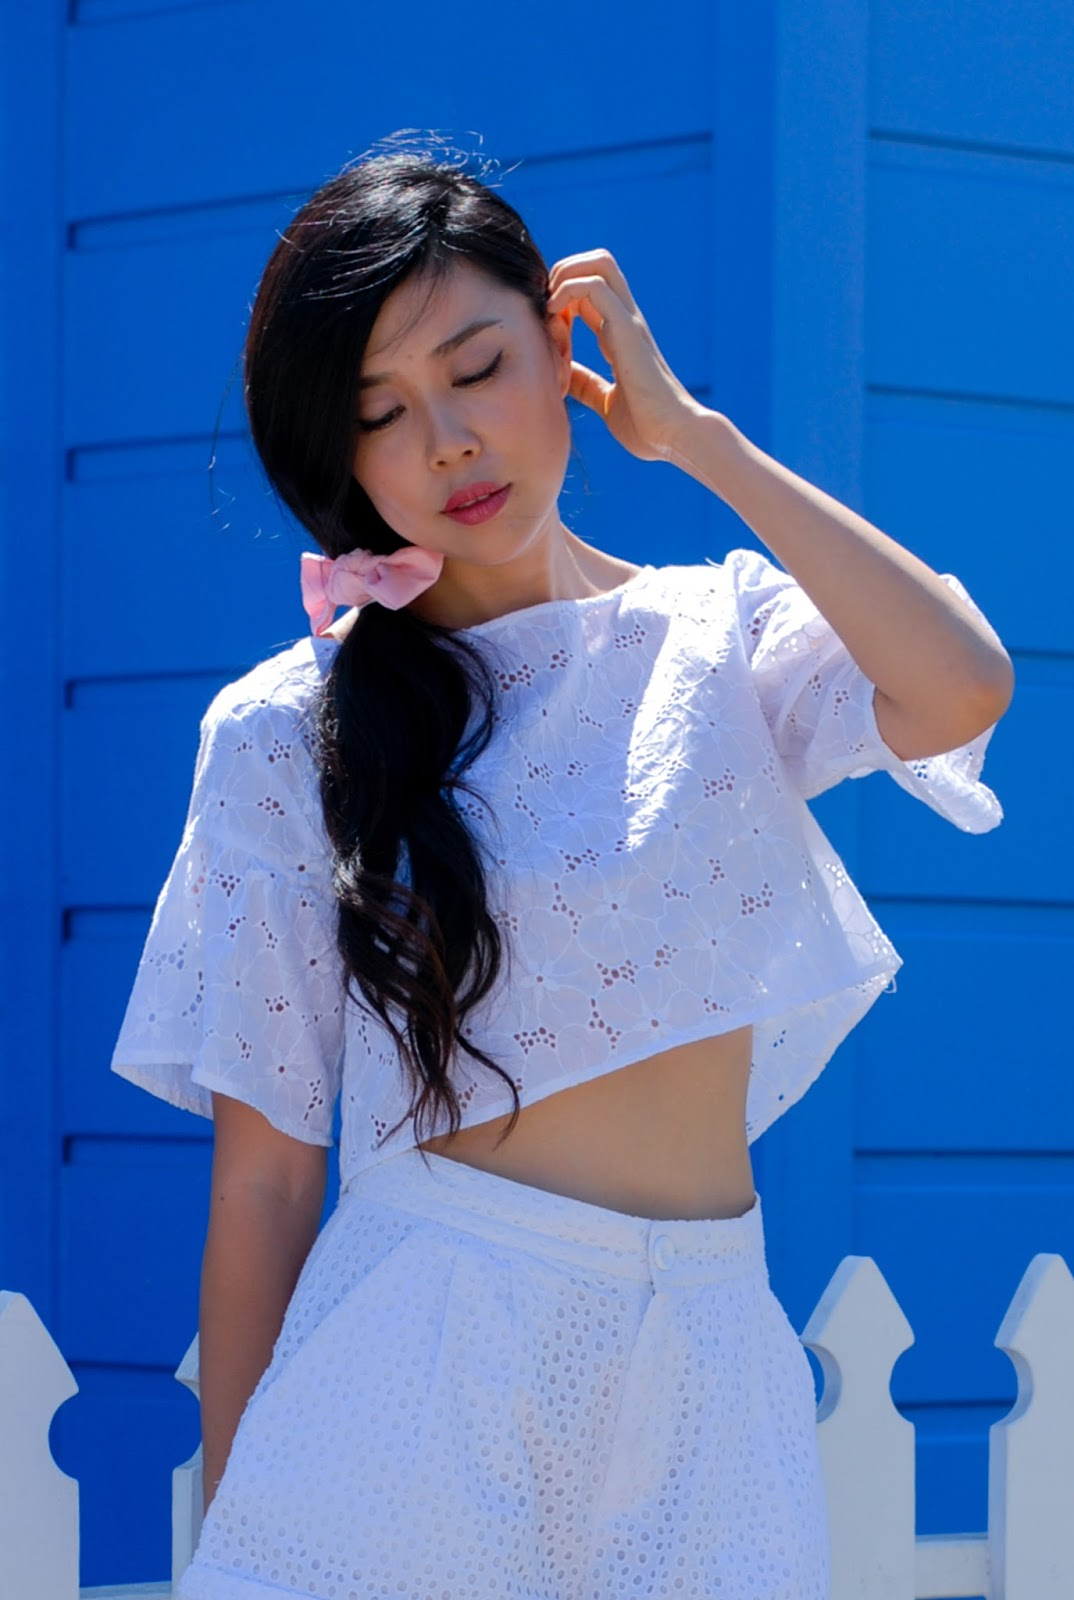 white eyelet summer outfit blogger style